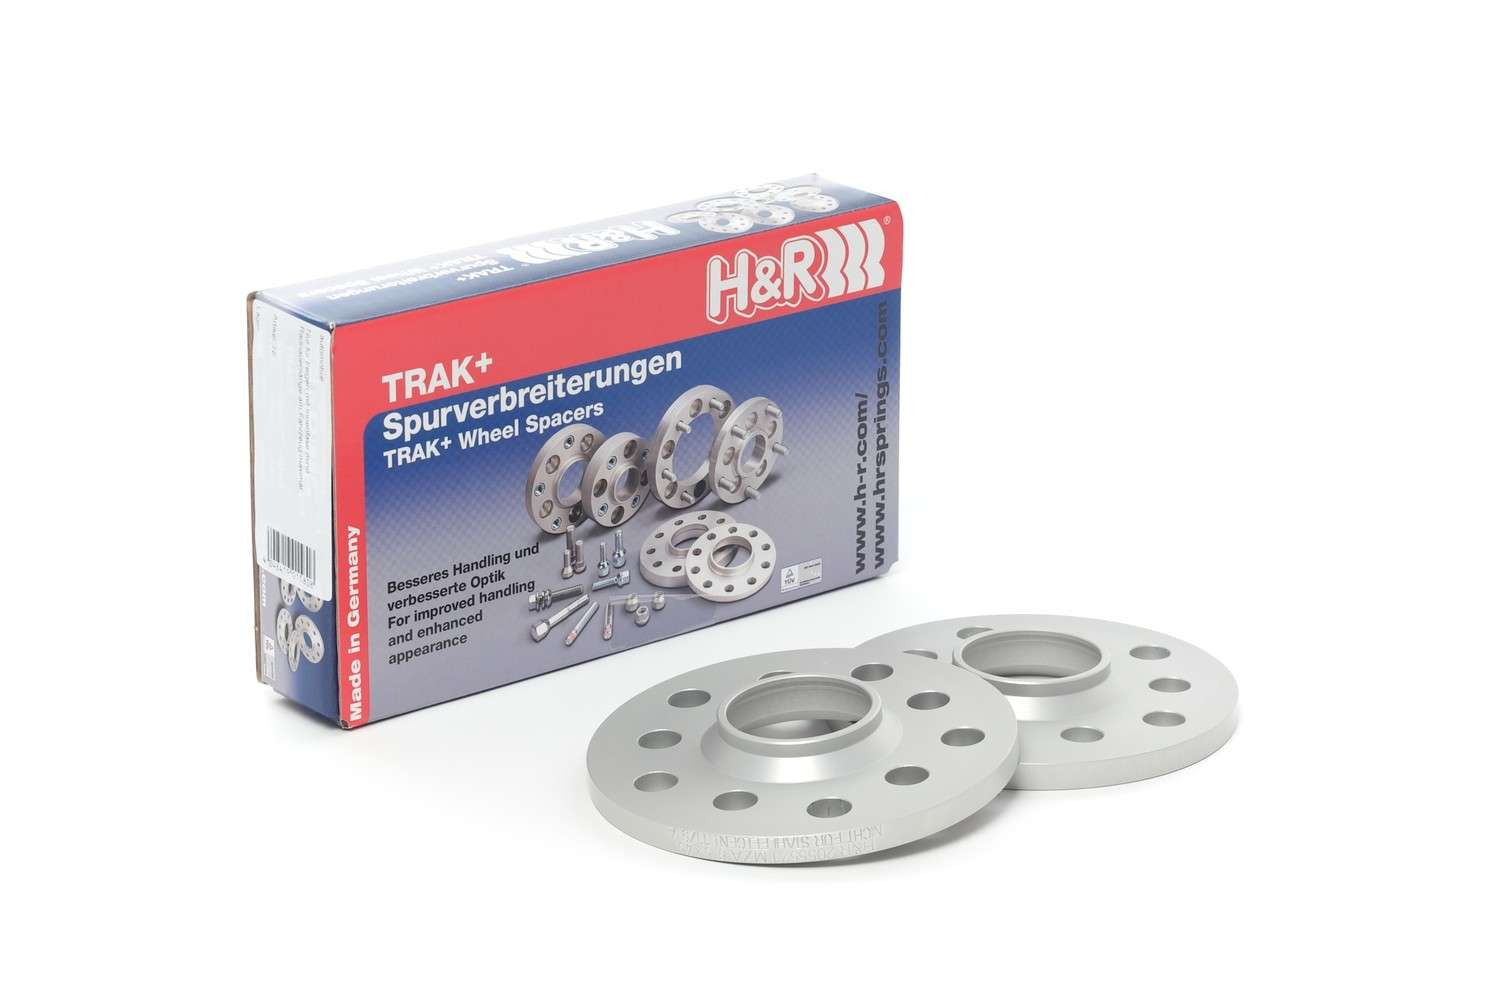 H&R SPECIAL SPRINGS - Trak  Wheel Spacers(two) - HR1 1045650